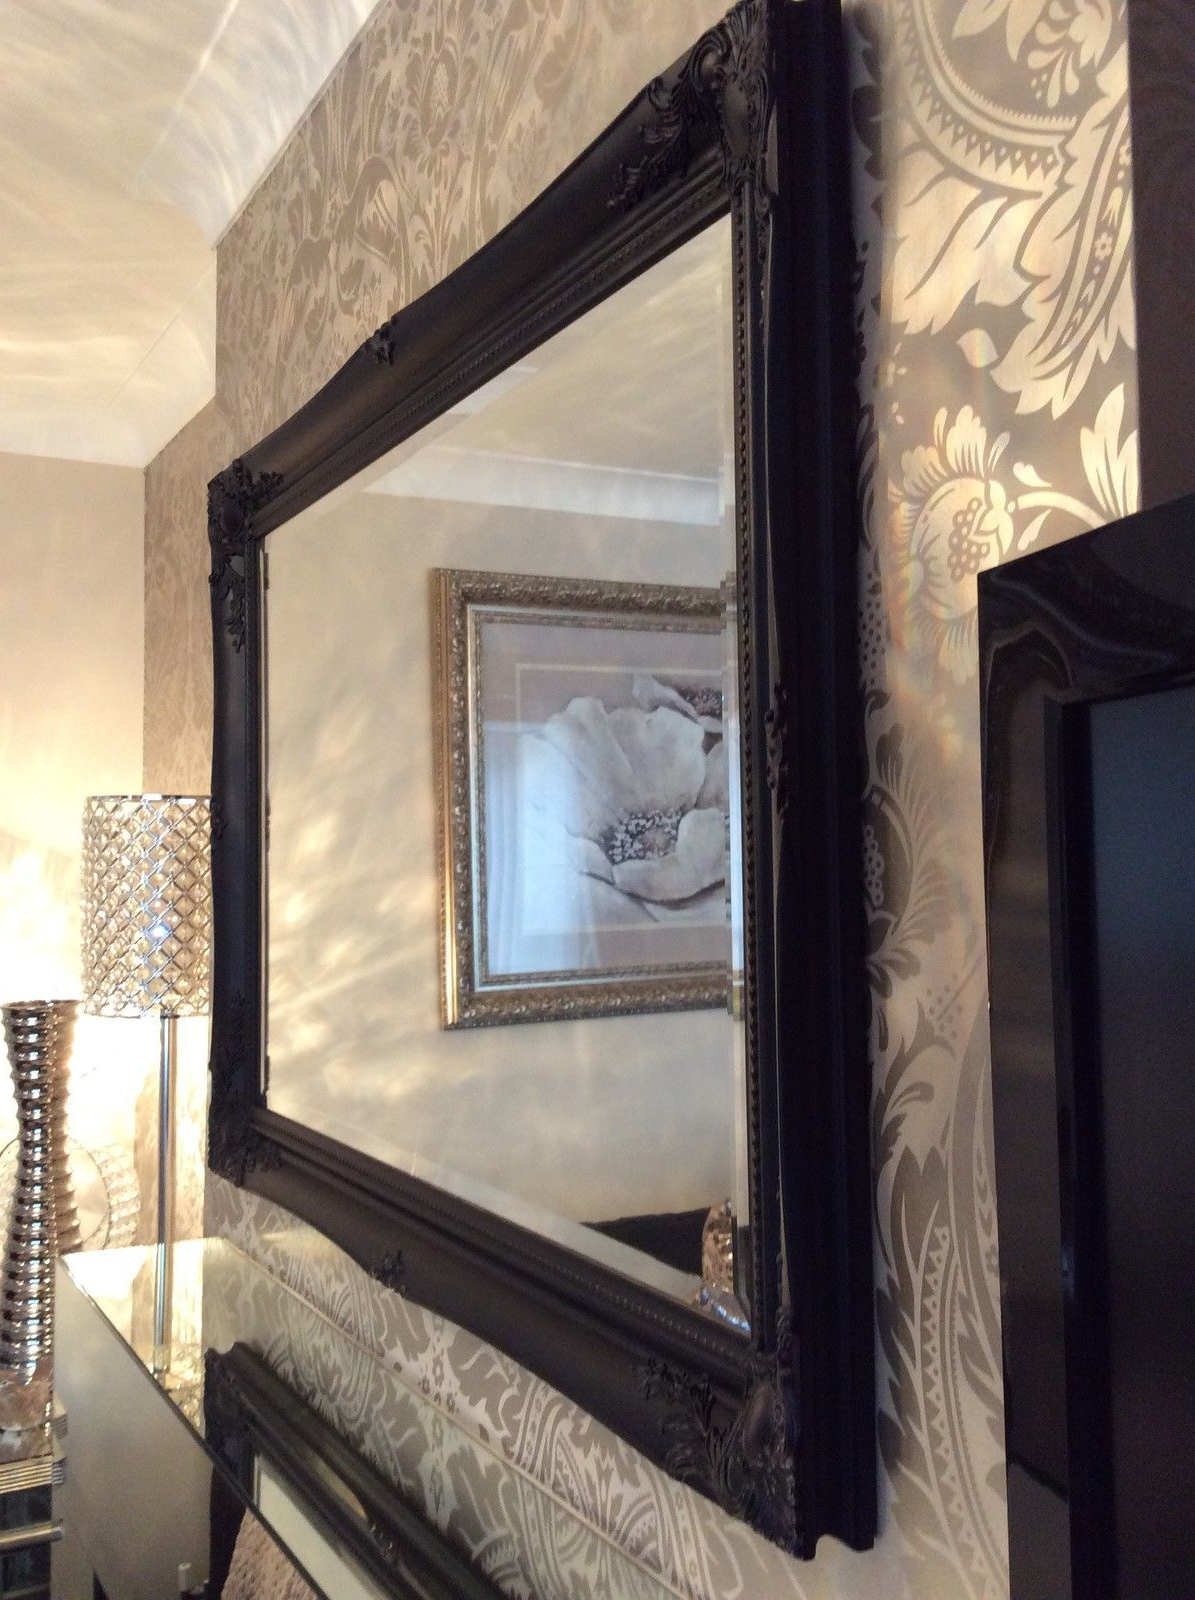 Best And Newest Large Black Shabby Chic Framed Ornate Overmantle Wall Mirror – Range With Regard To Black Frame Wall Mirrors (View 3 of 20)